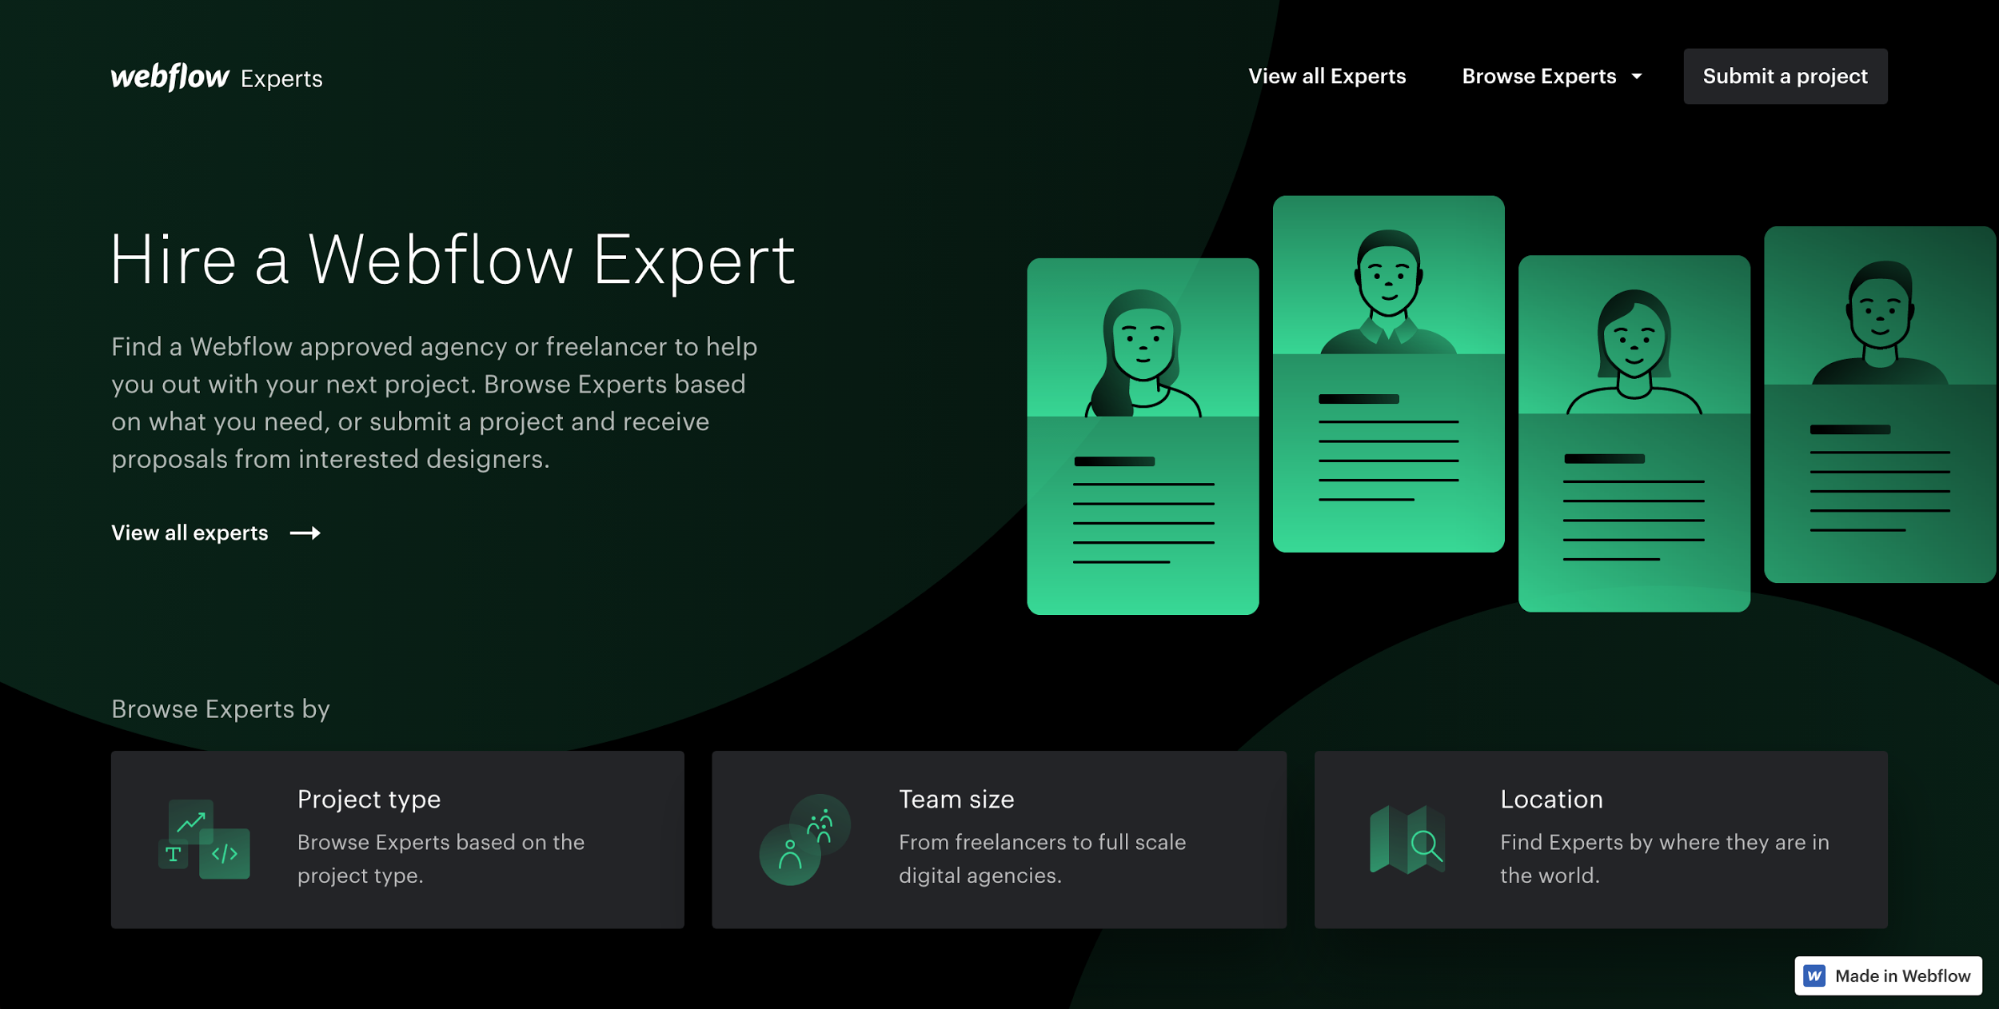 New To The Block Is Webflow Experts, A Freelancer Marketplace Specializing  In Webflowbased Projects Like Toptal, Webflow Experts Has An Application  And